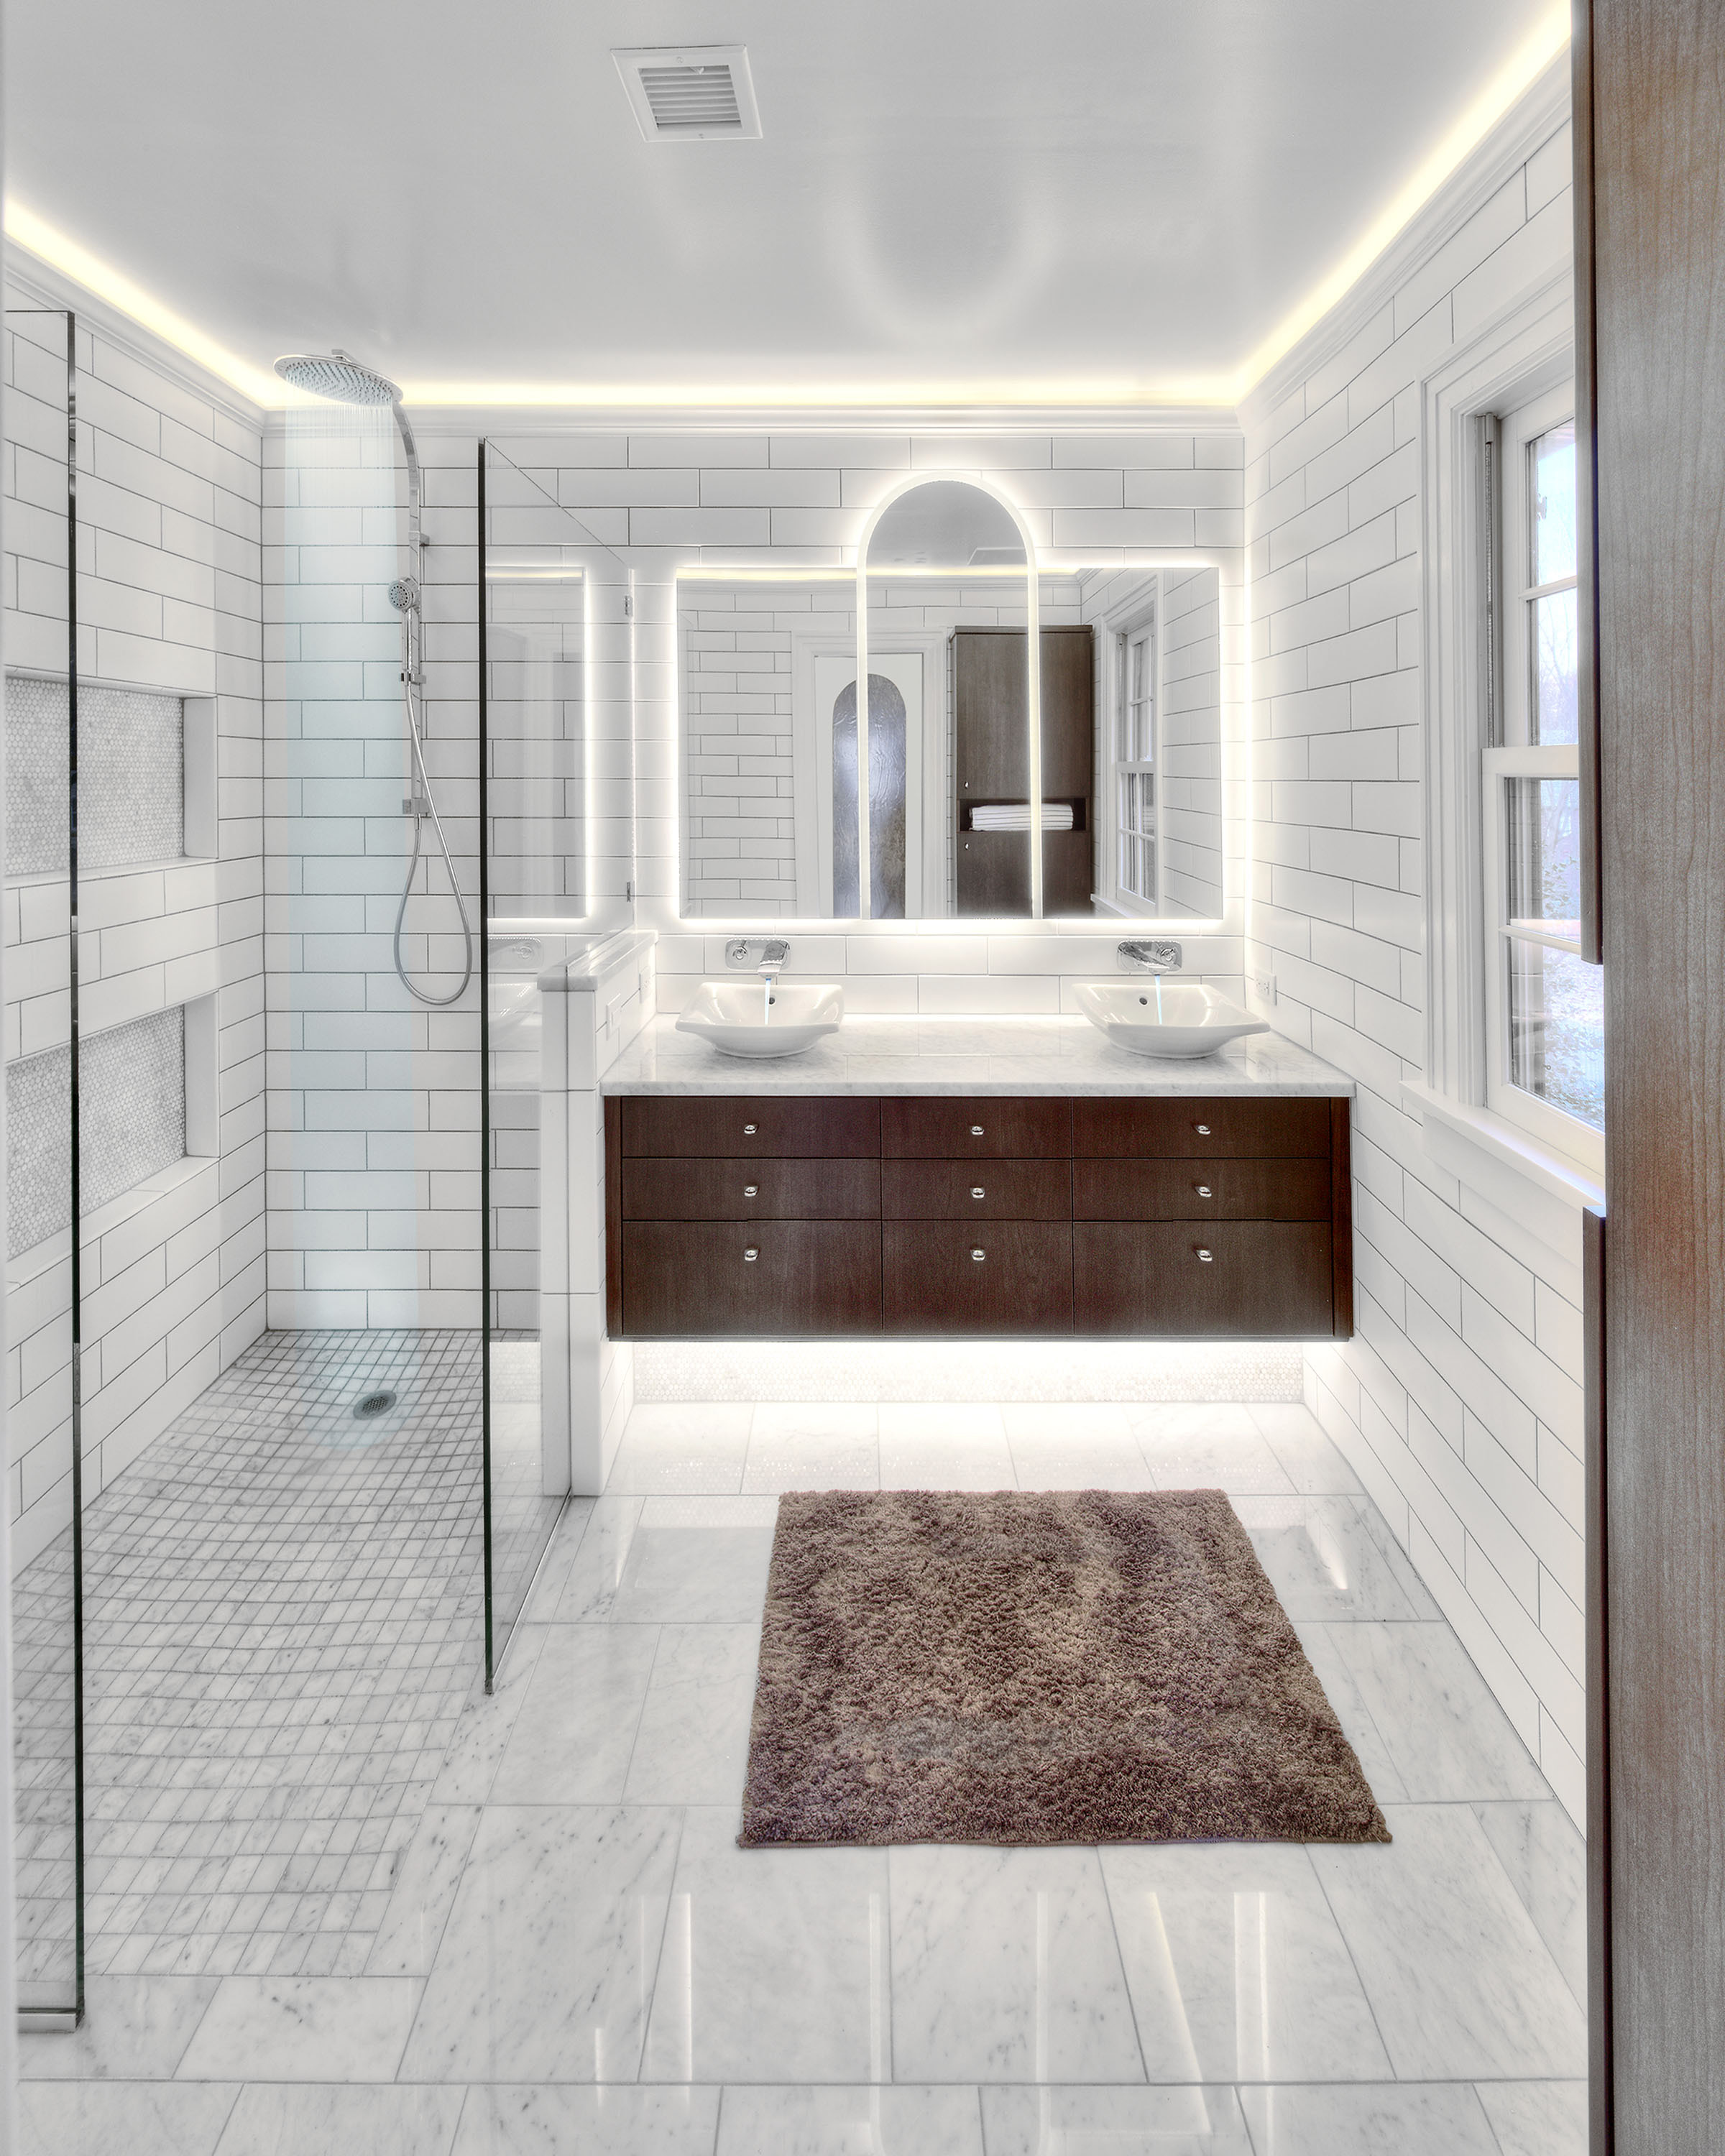 The fixtures have a modern twist and the custom mirror design with integrated lighting is stunning.